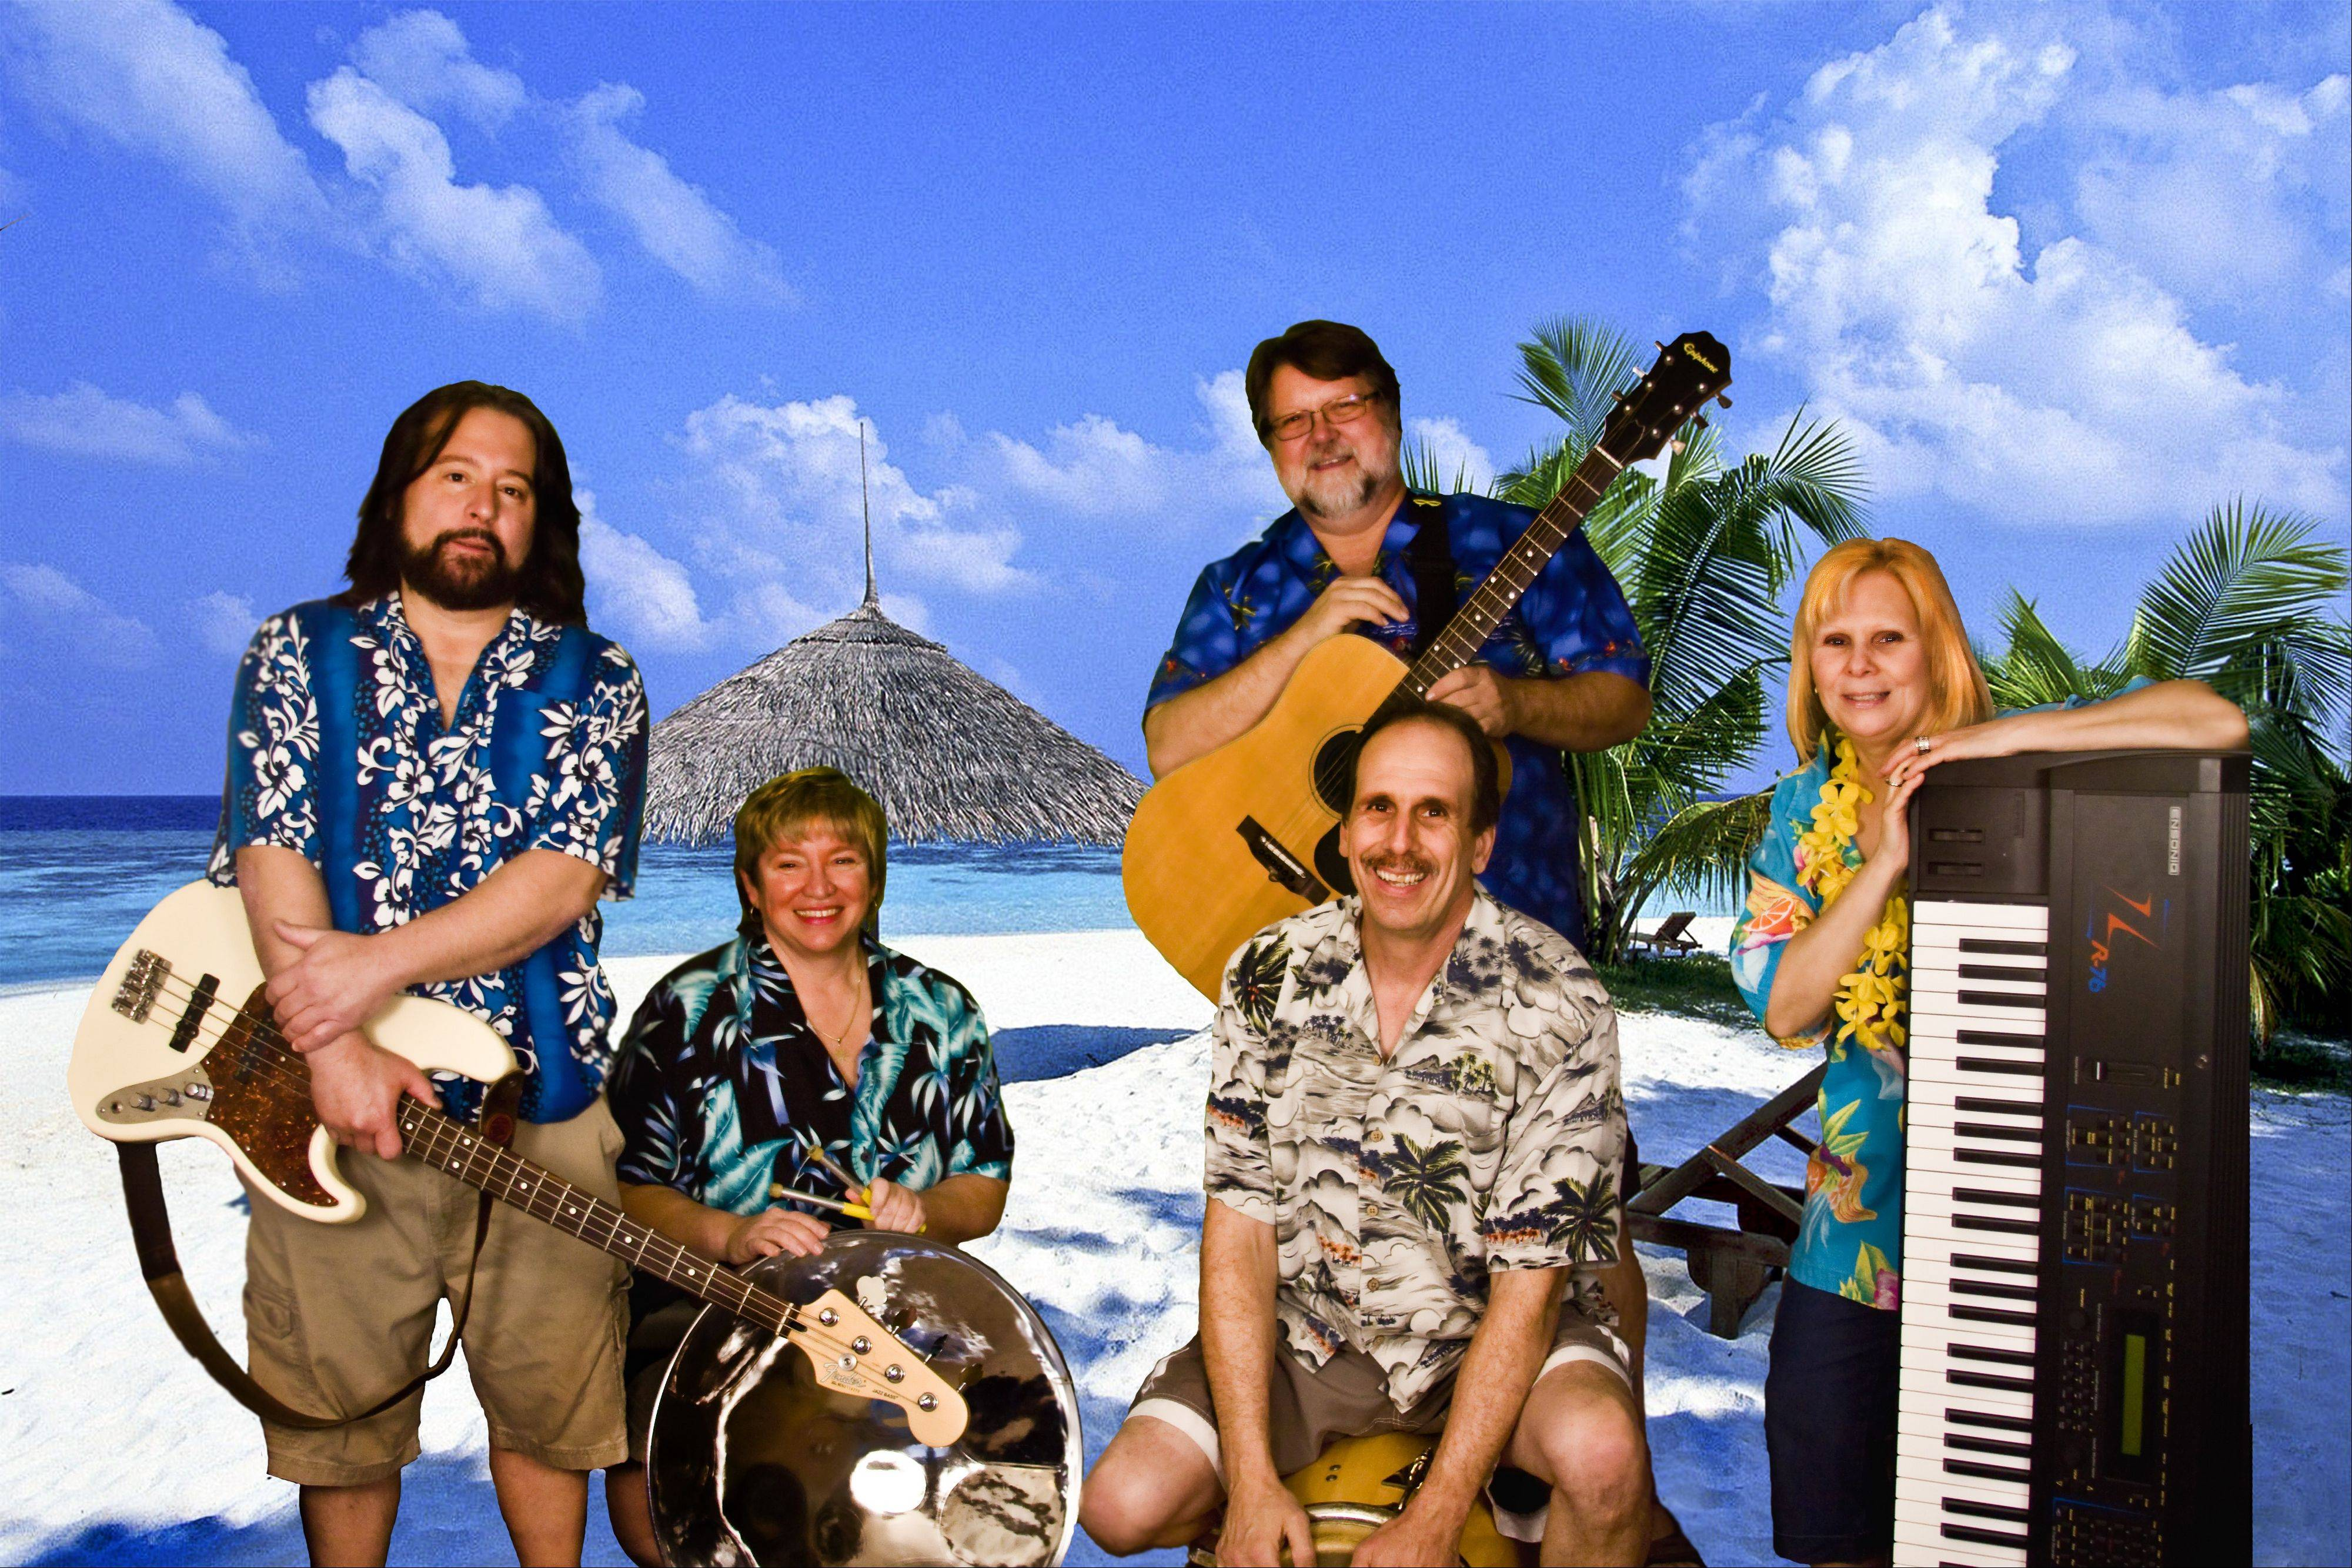 Peach's Beach Party, a Jimmy Buffett tribute band, performs at the Bartlett Park Gazebo, 4 p.m. Saturday.